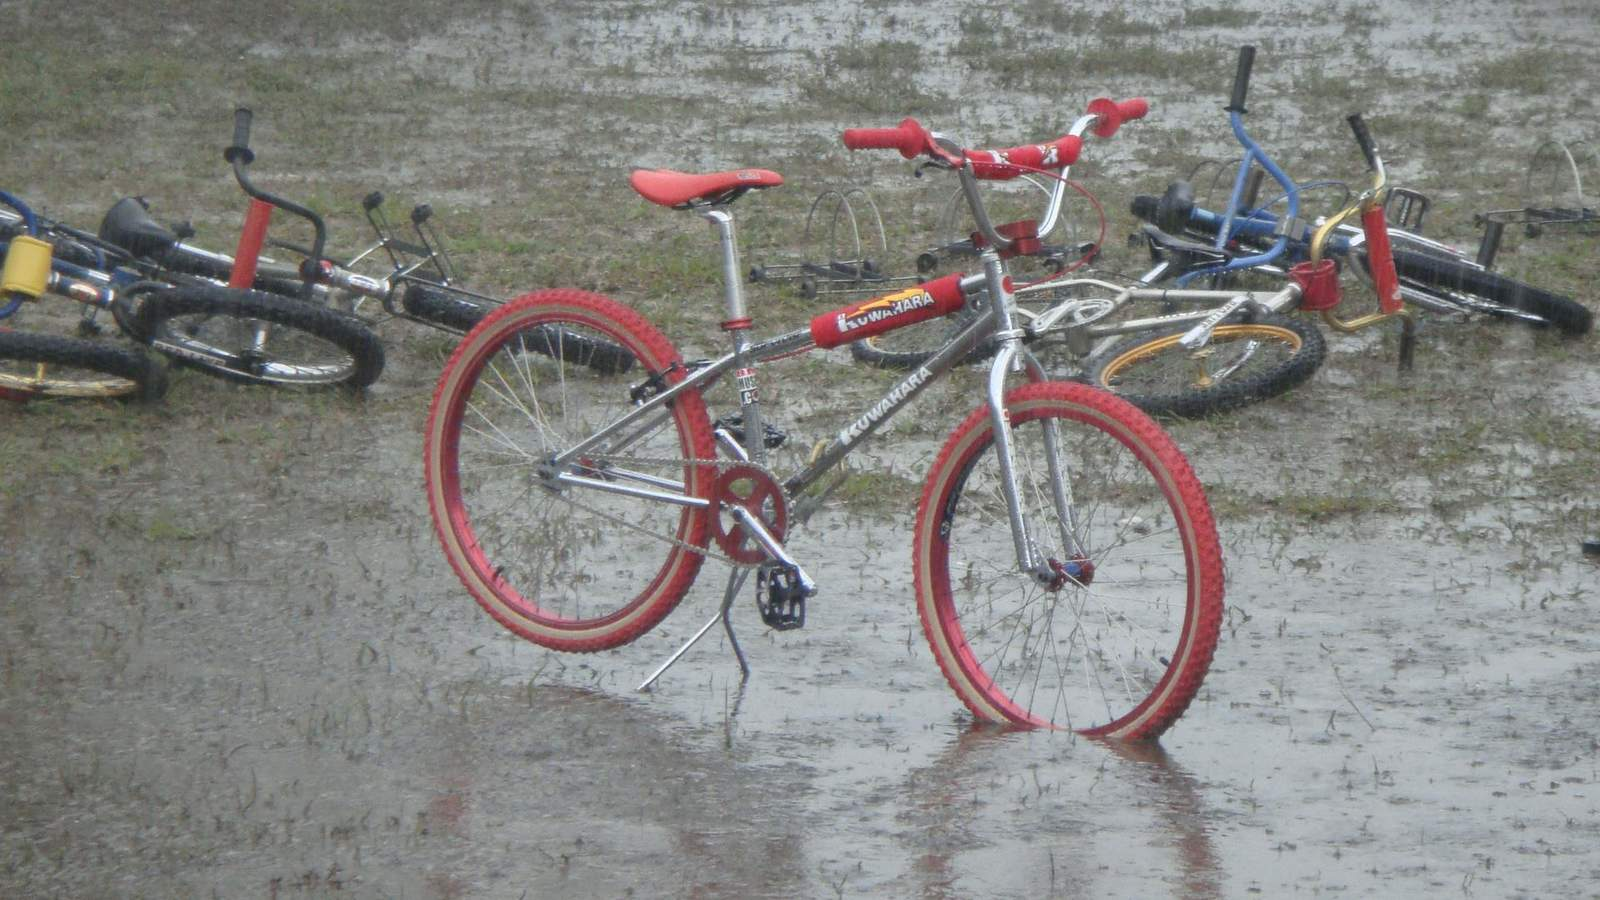 http://uploads.bmxmuseum.com/user-images/8623/411773_3296271960119_2052234042_o58e43c8be7.jpg